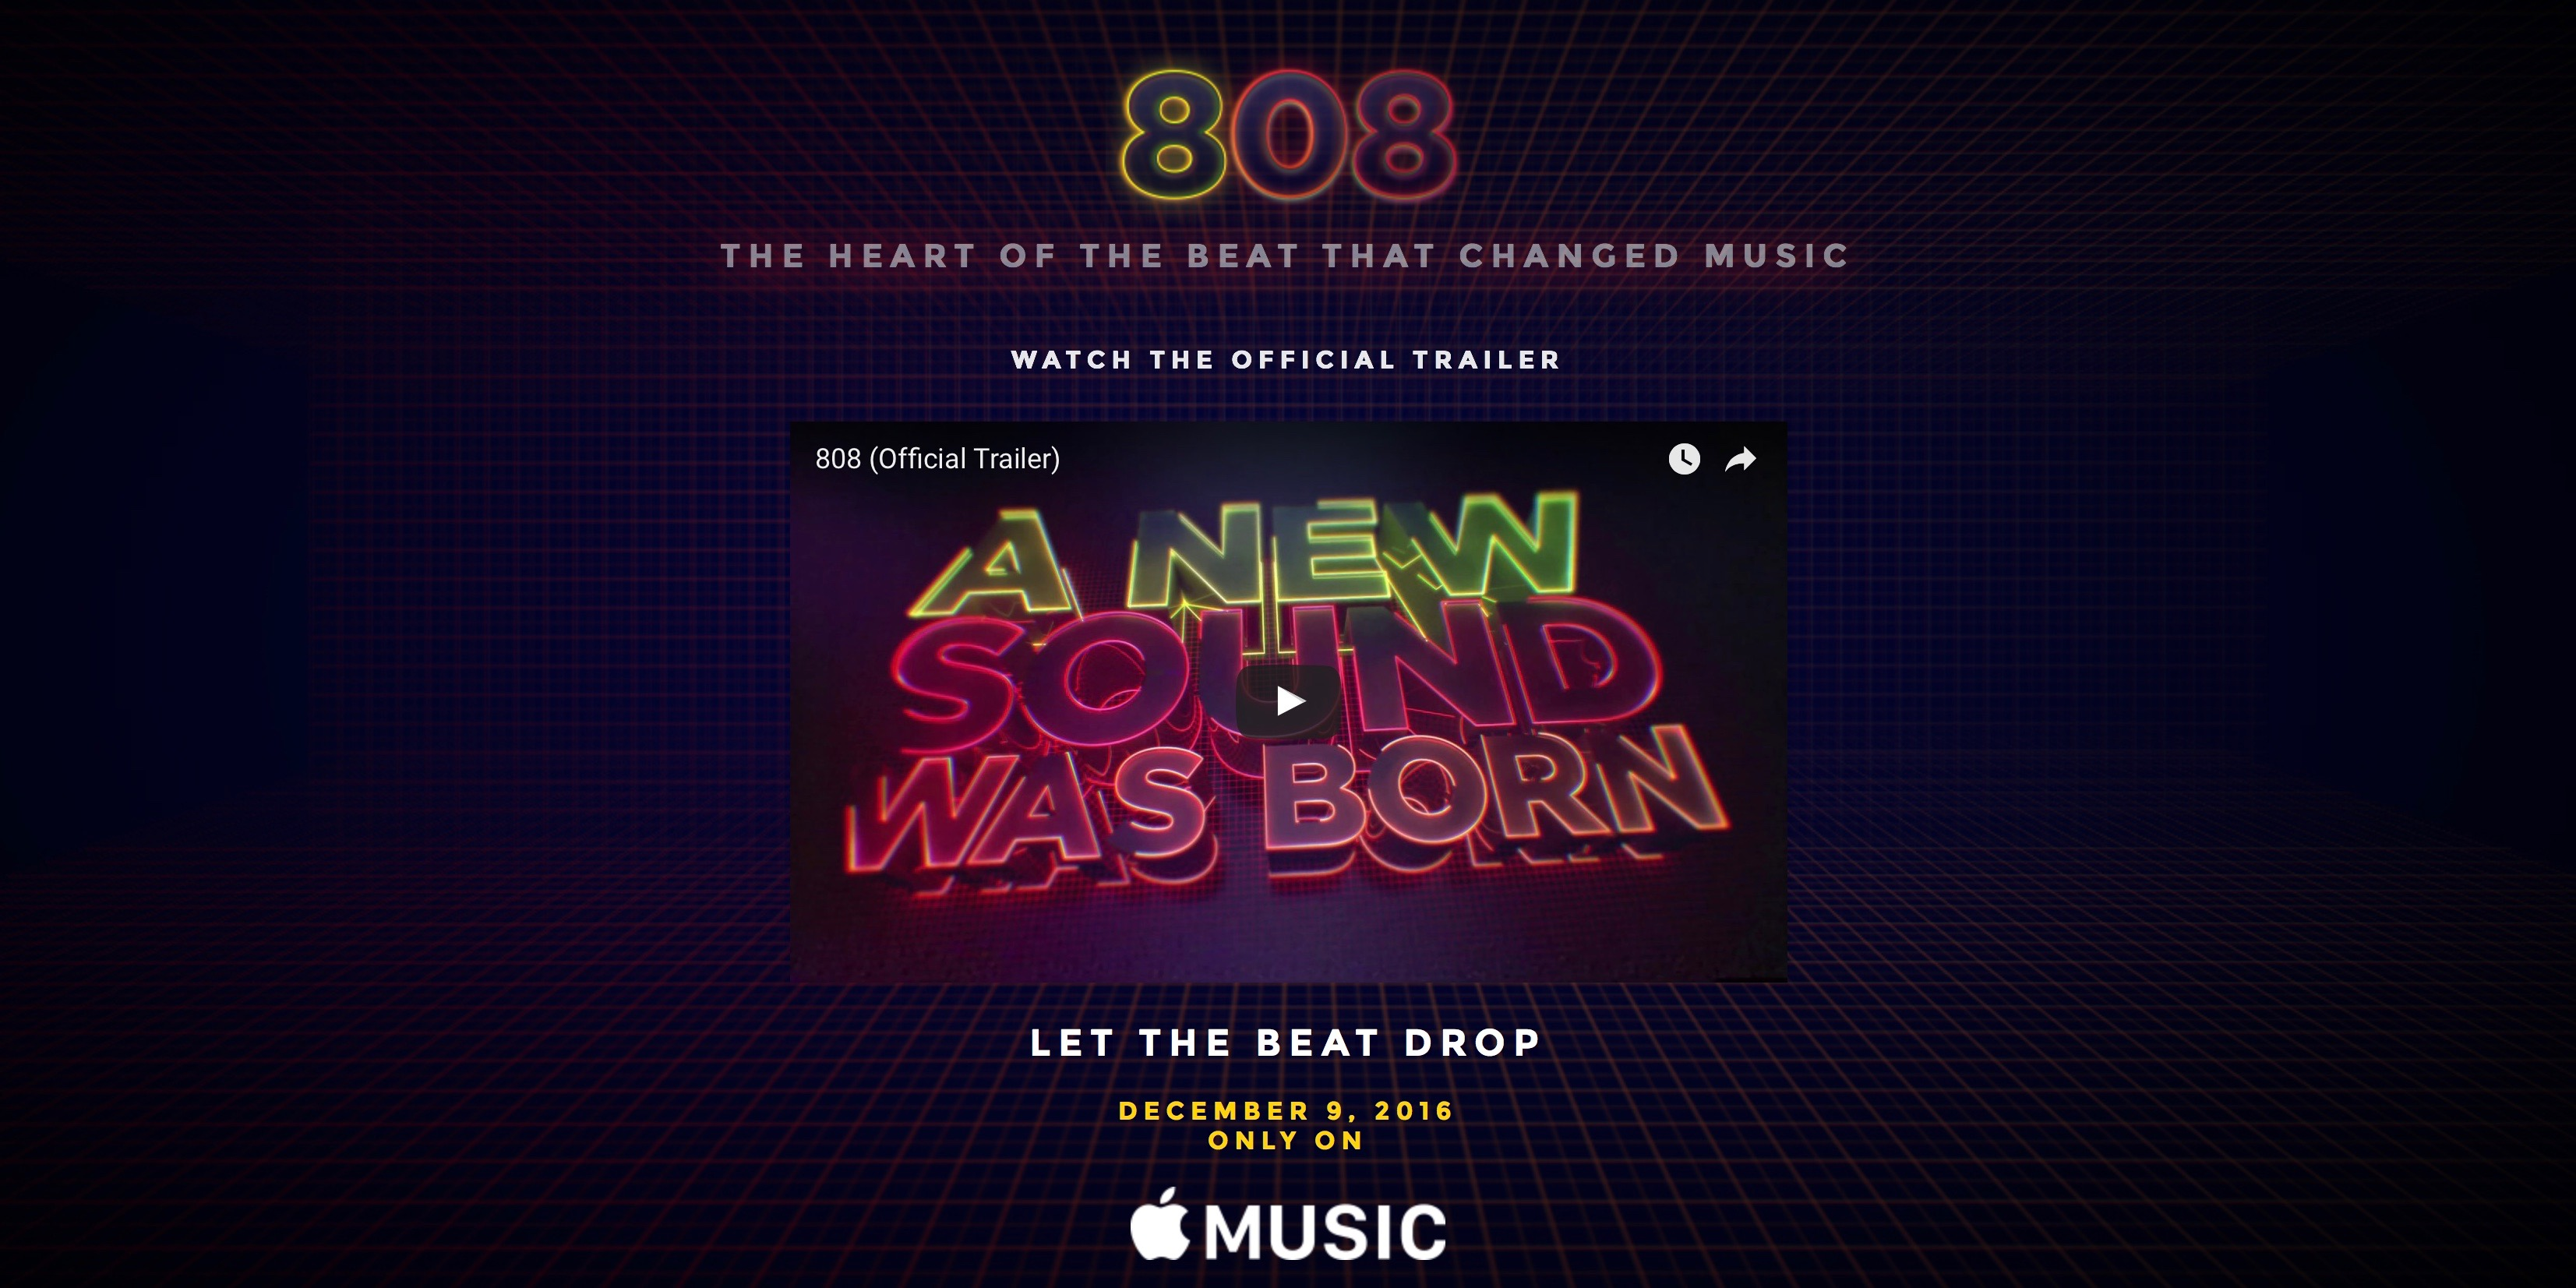 Apple's first original documentary '808: The Movie' now available